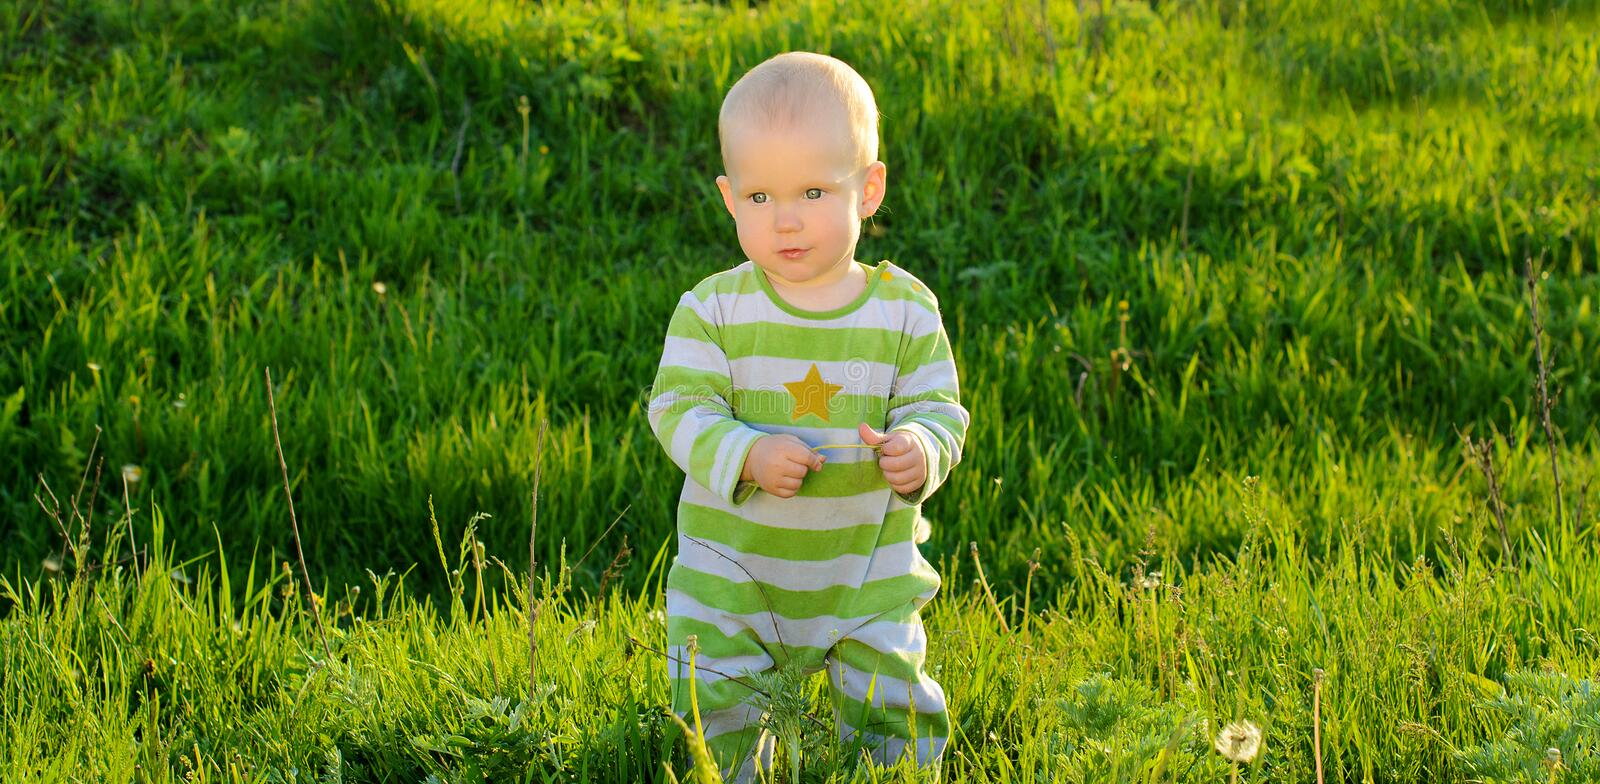 Toddler baby on spring green grass background stock photos